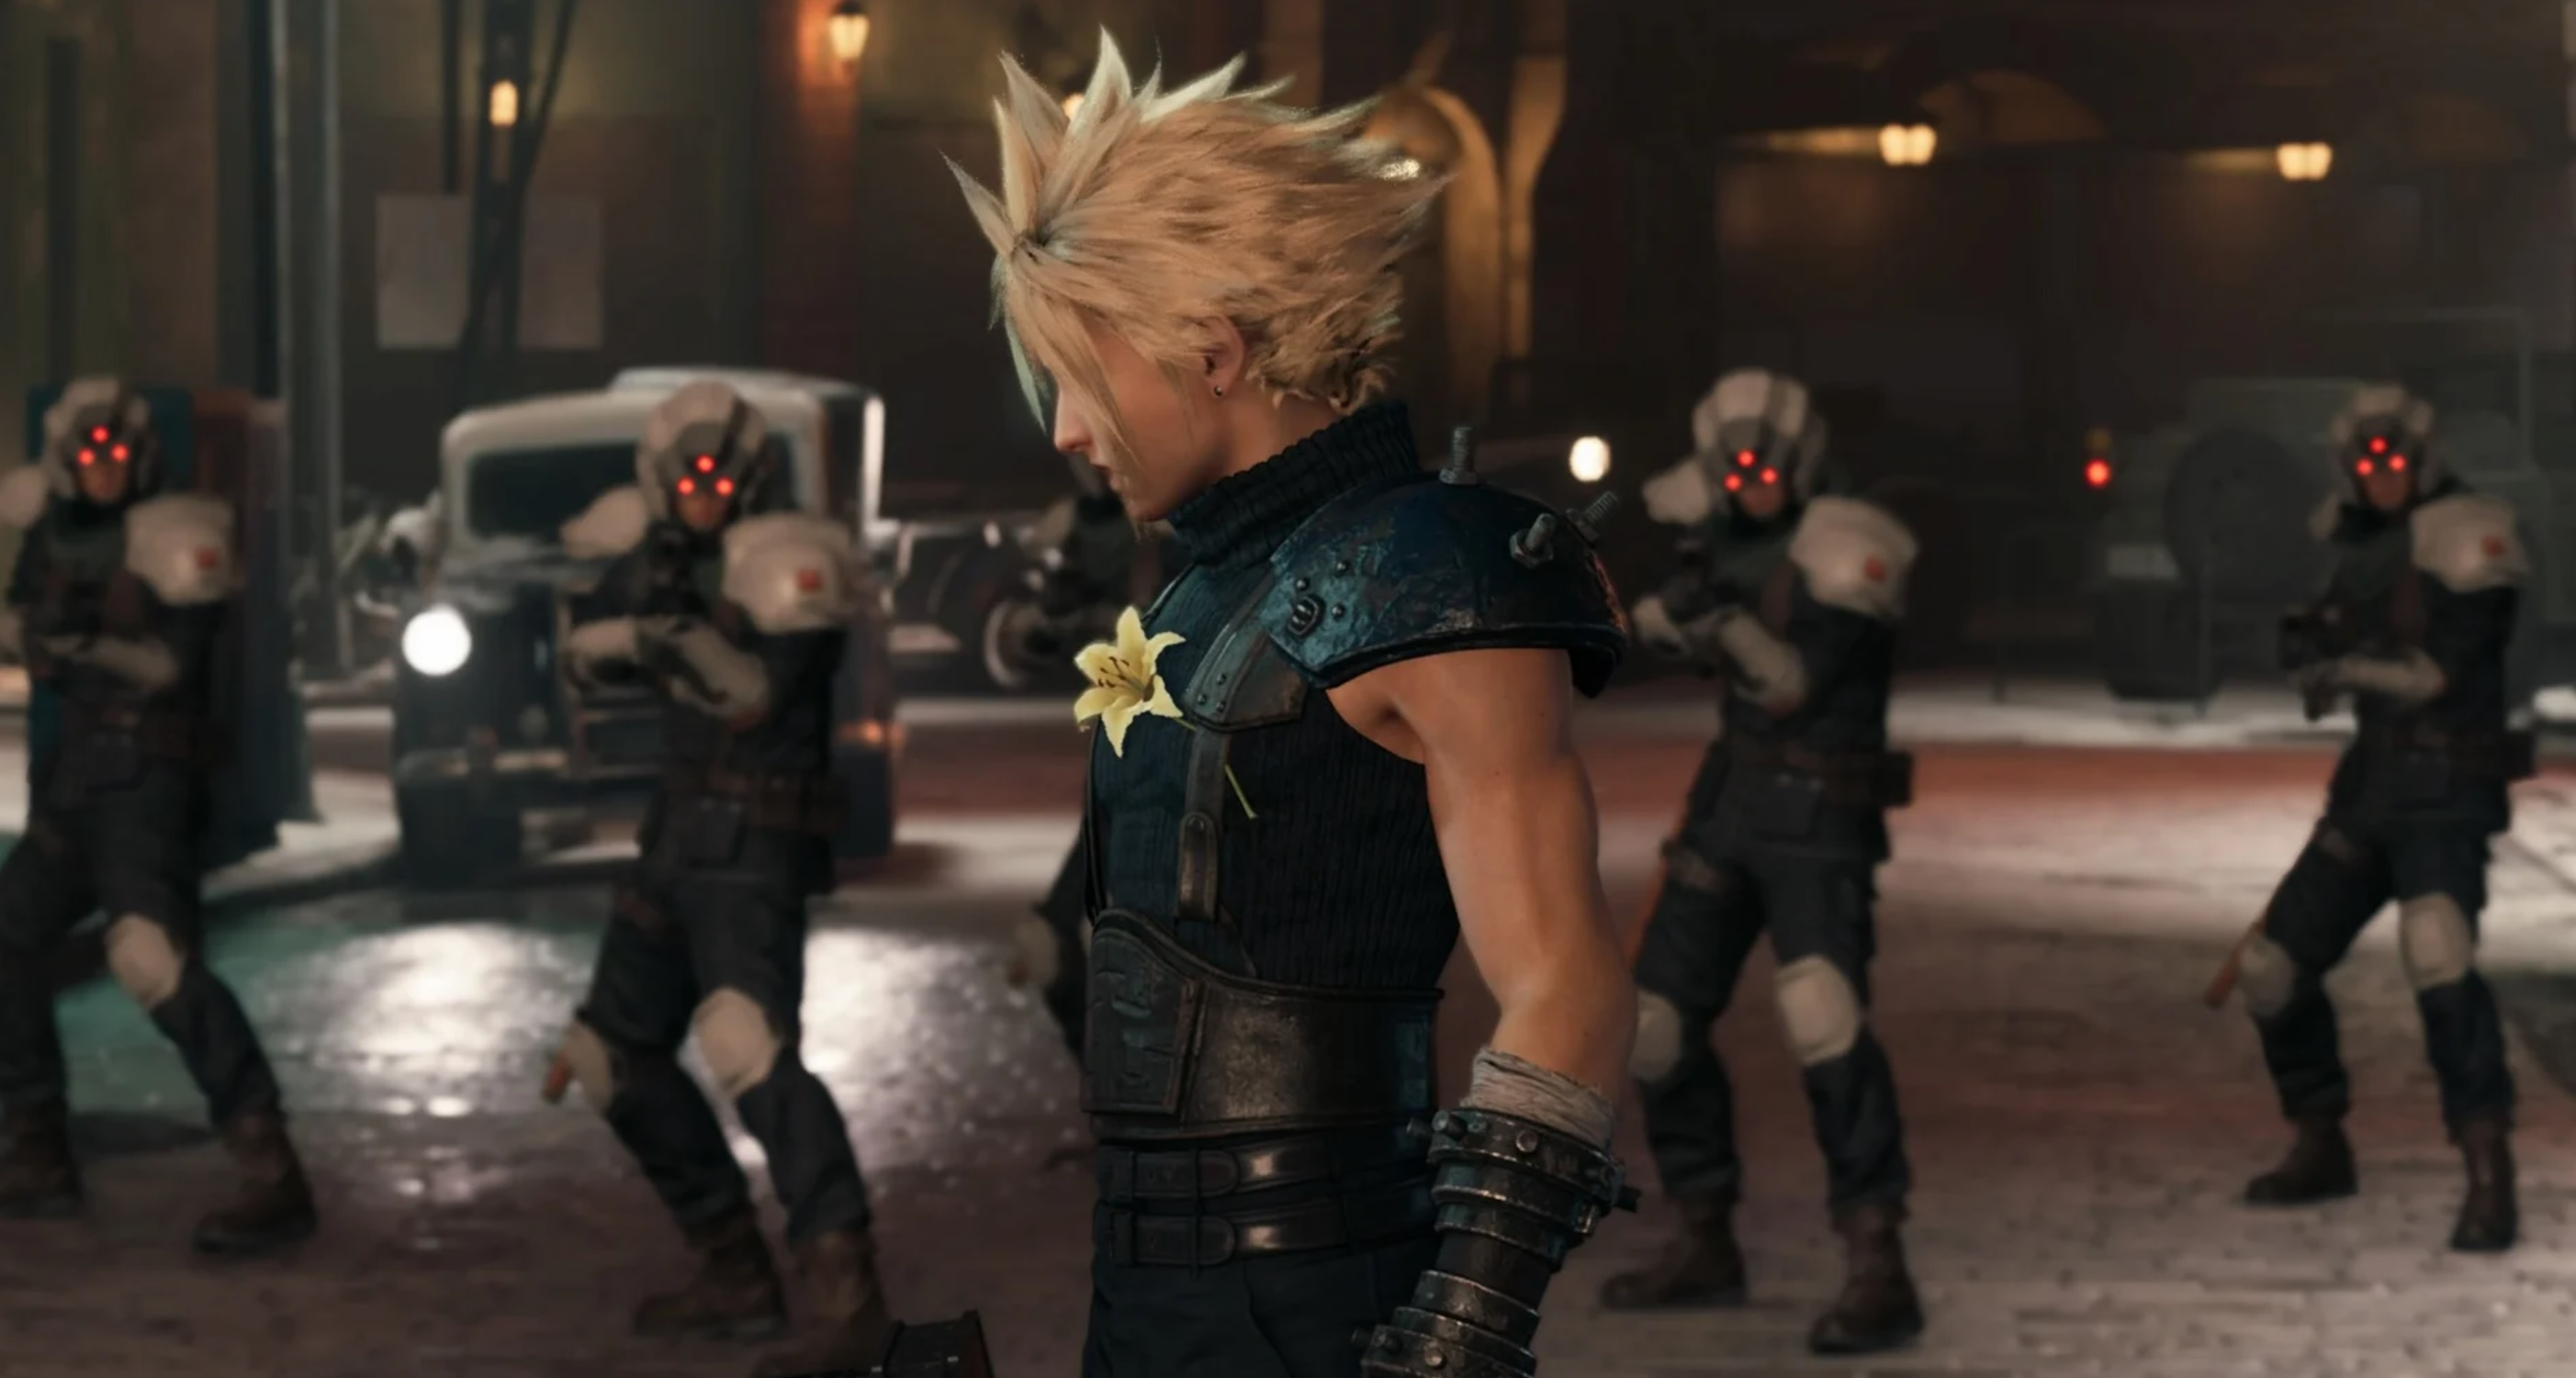 Final Fantasy VII Remake creator says that the project might be broken into 'shorter stories' to get it out quicker screenshot